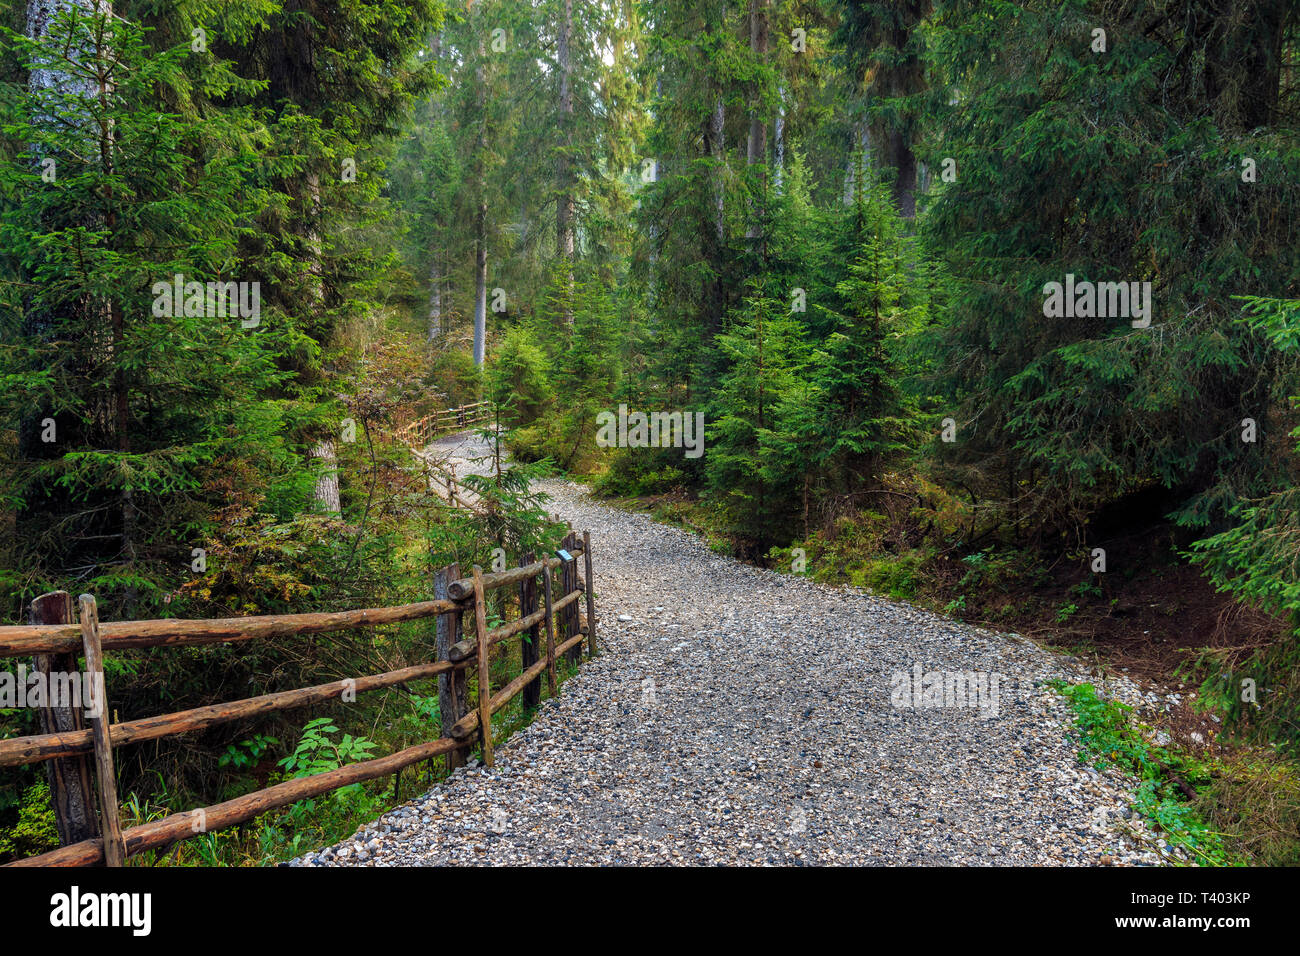 The trail in the woods surrounding the lake of Carezza (Karessee). Taken at sunrise on a morning at the beginning of October - Stock Image